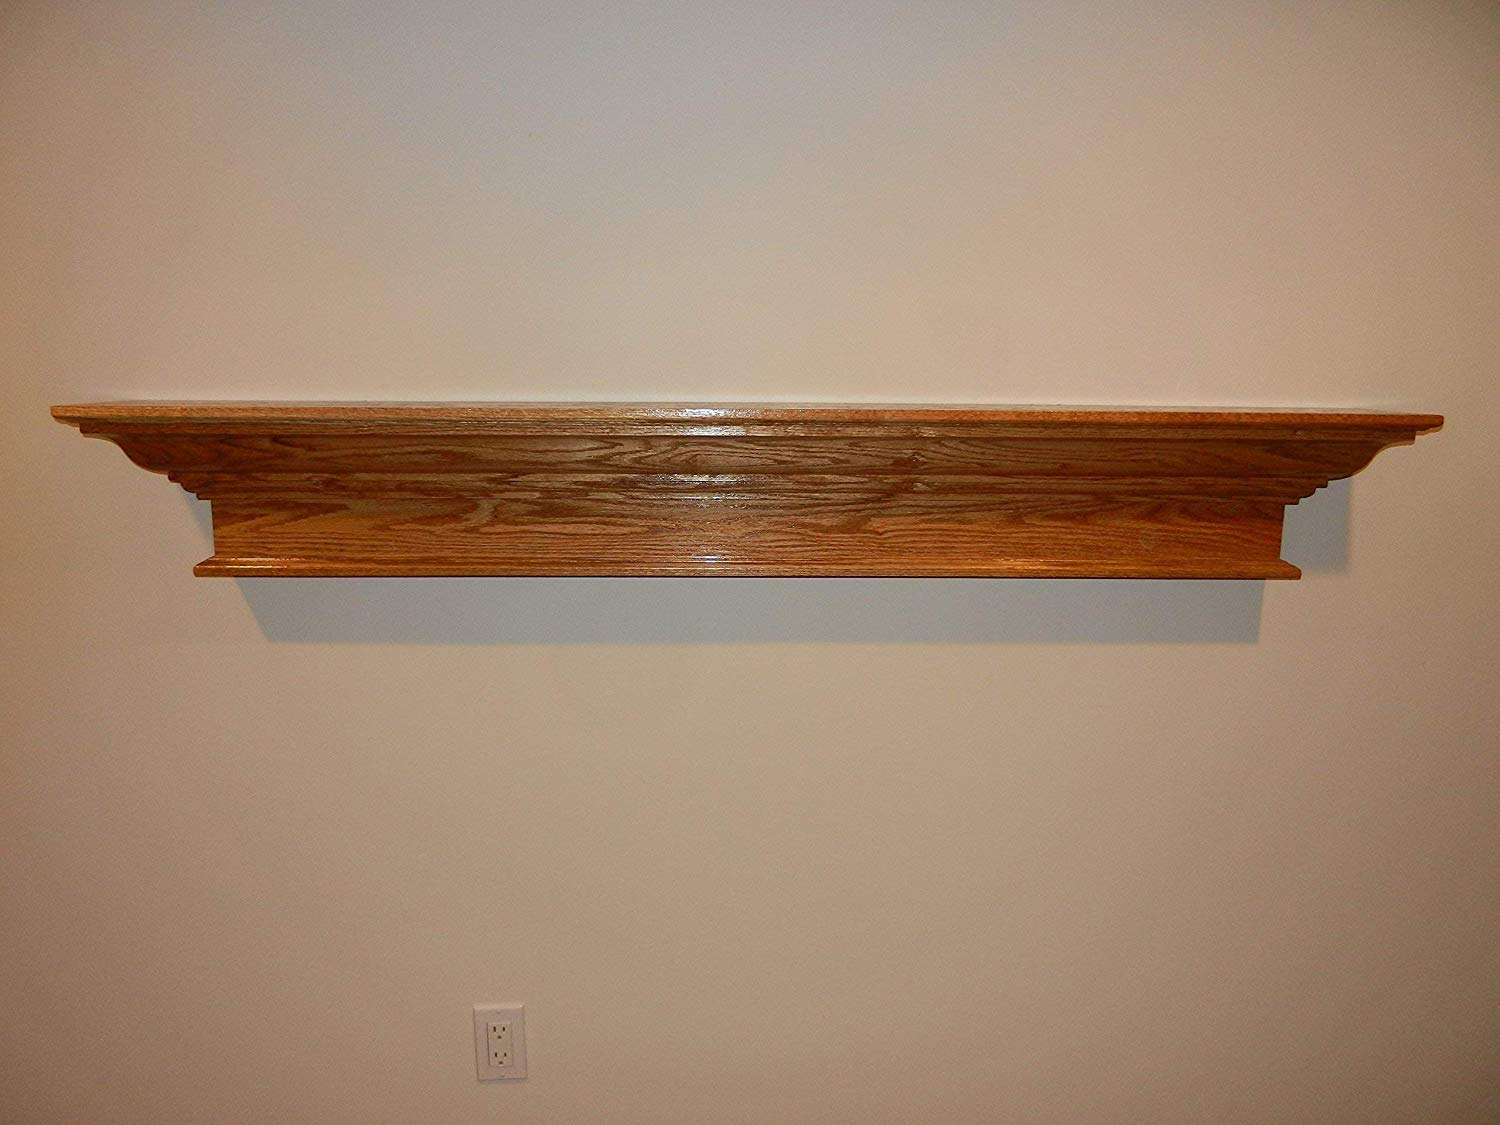 red oak contemporary wood floating shelf fireplace mantel mantle handmade grey shelves ikea stick door hooks can you use command strips brick wooden kitchen with hanging big shoe